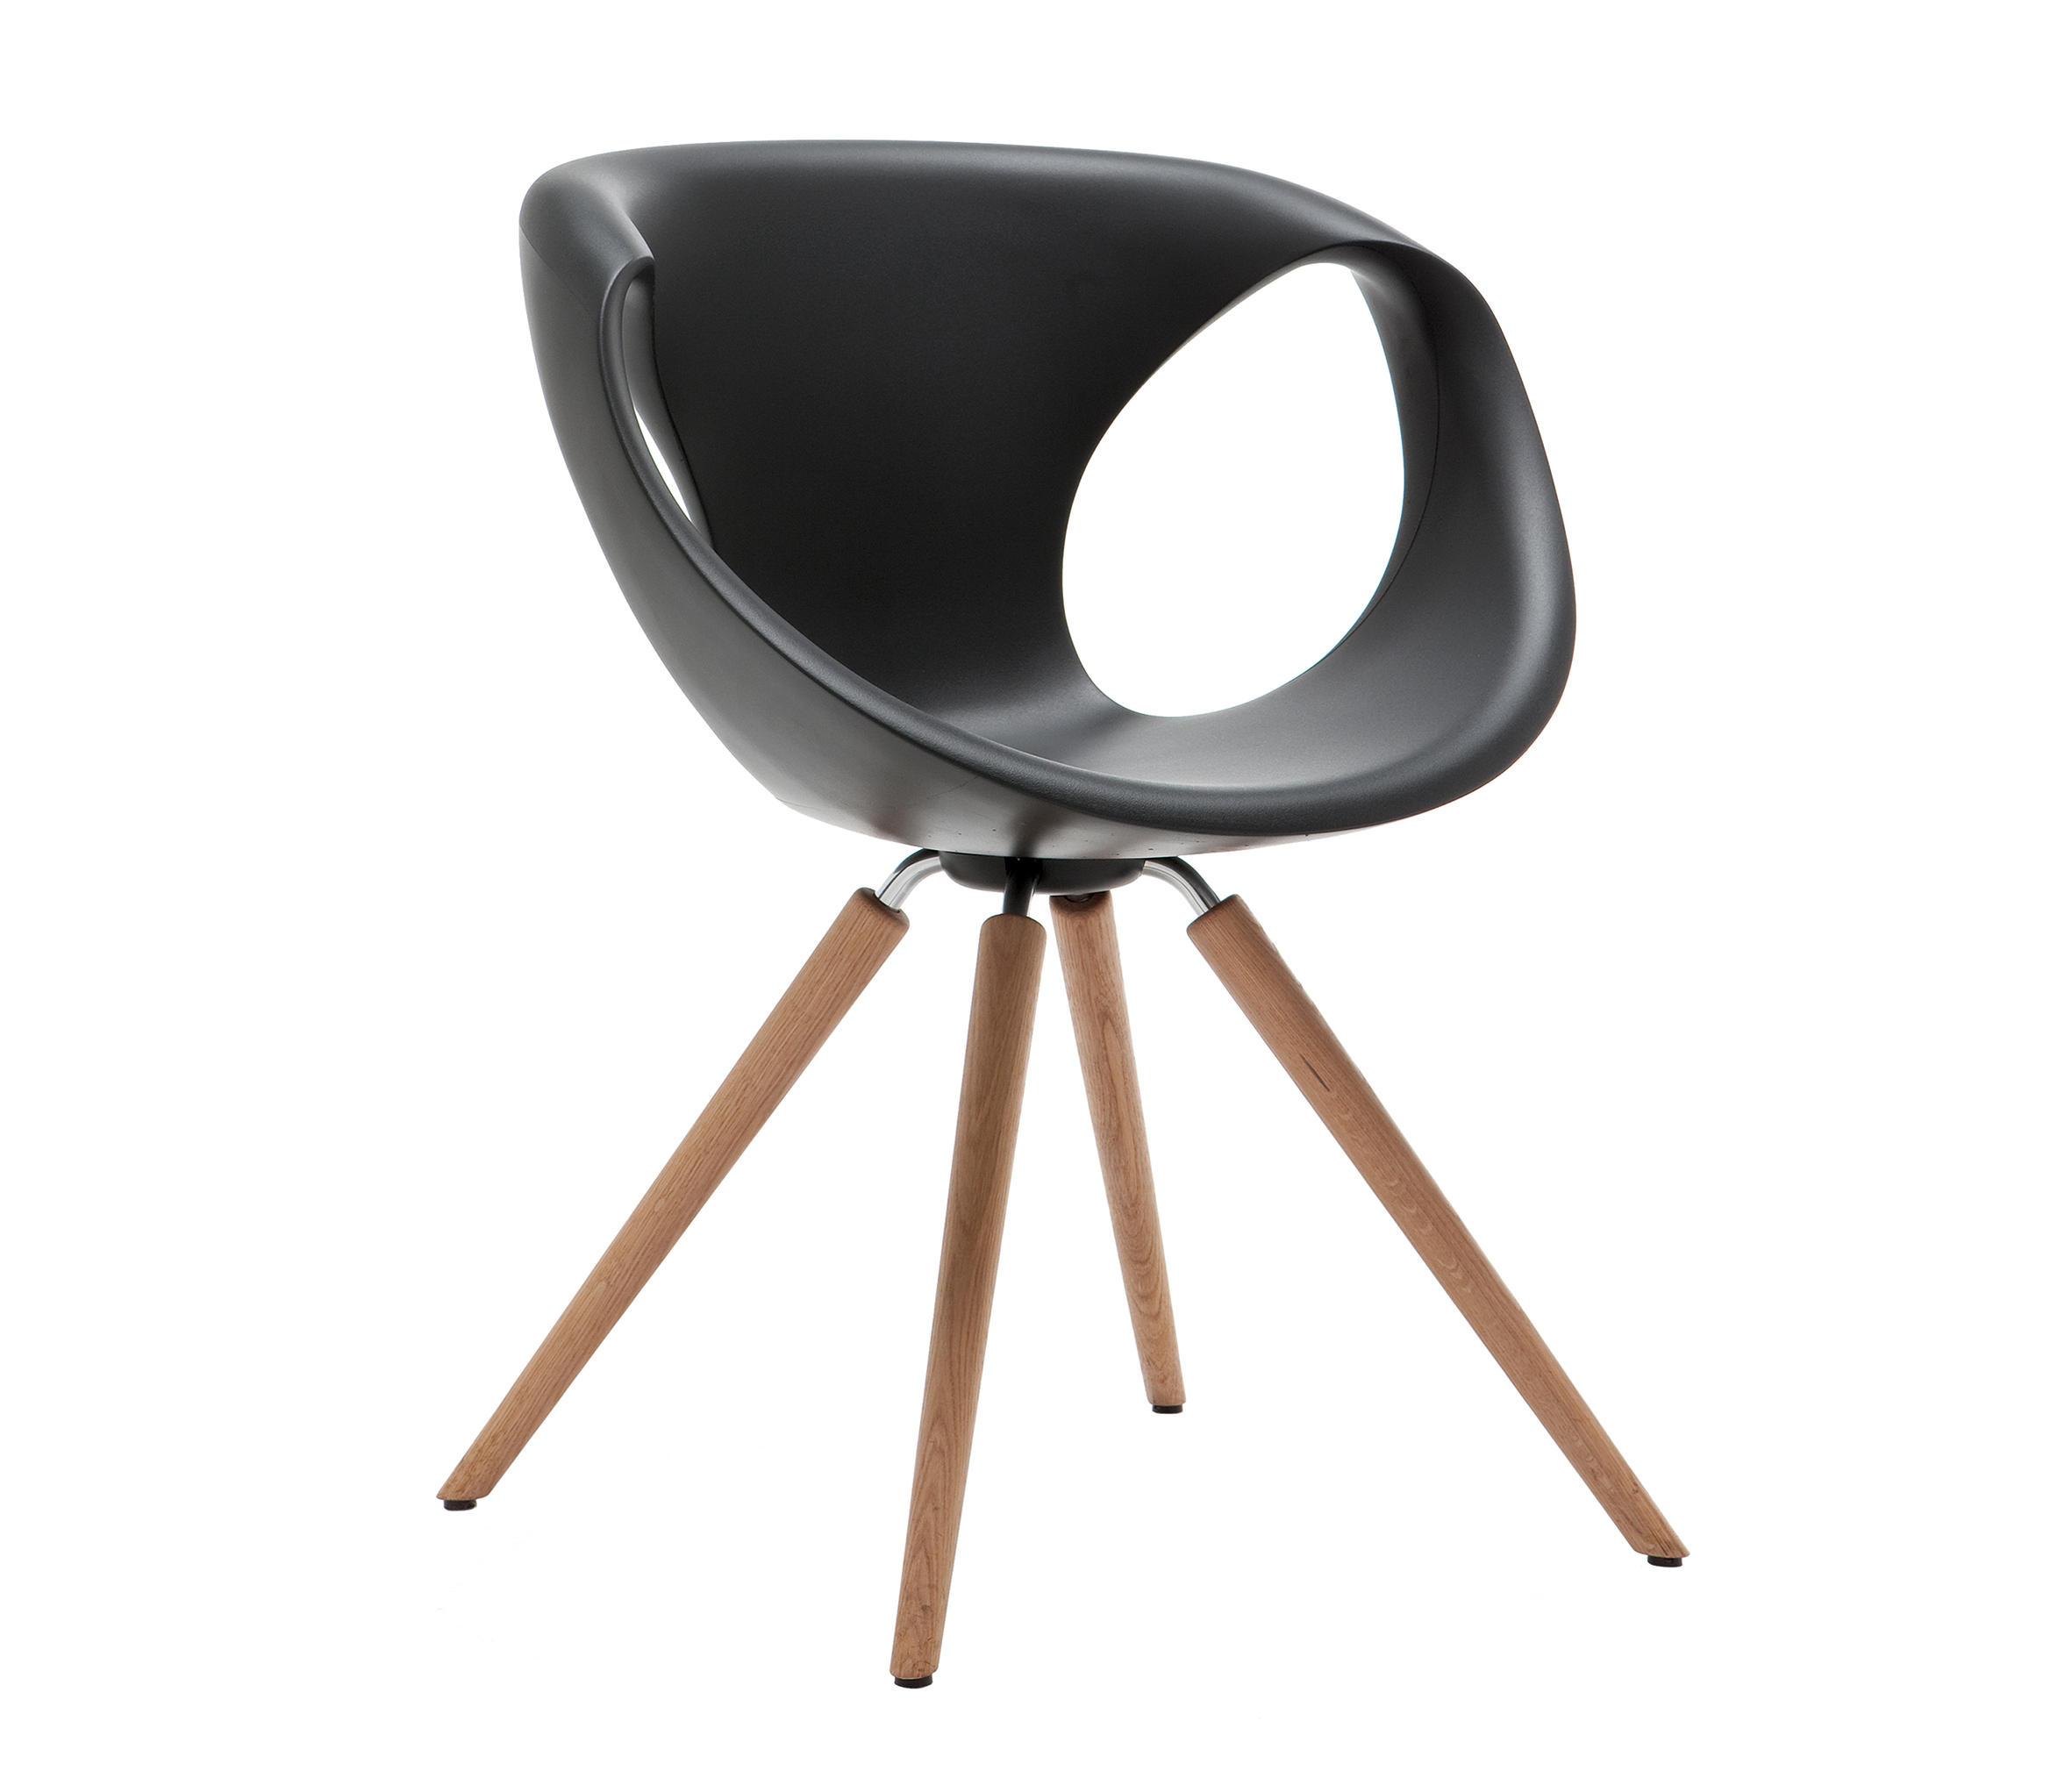 Tonon Sedie Manzano.Up Chair I 907 Chairs From Tonon Architonic